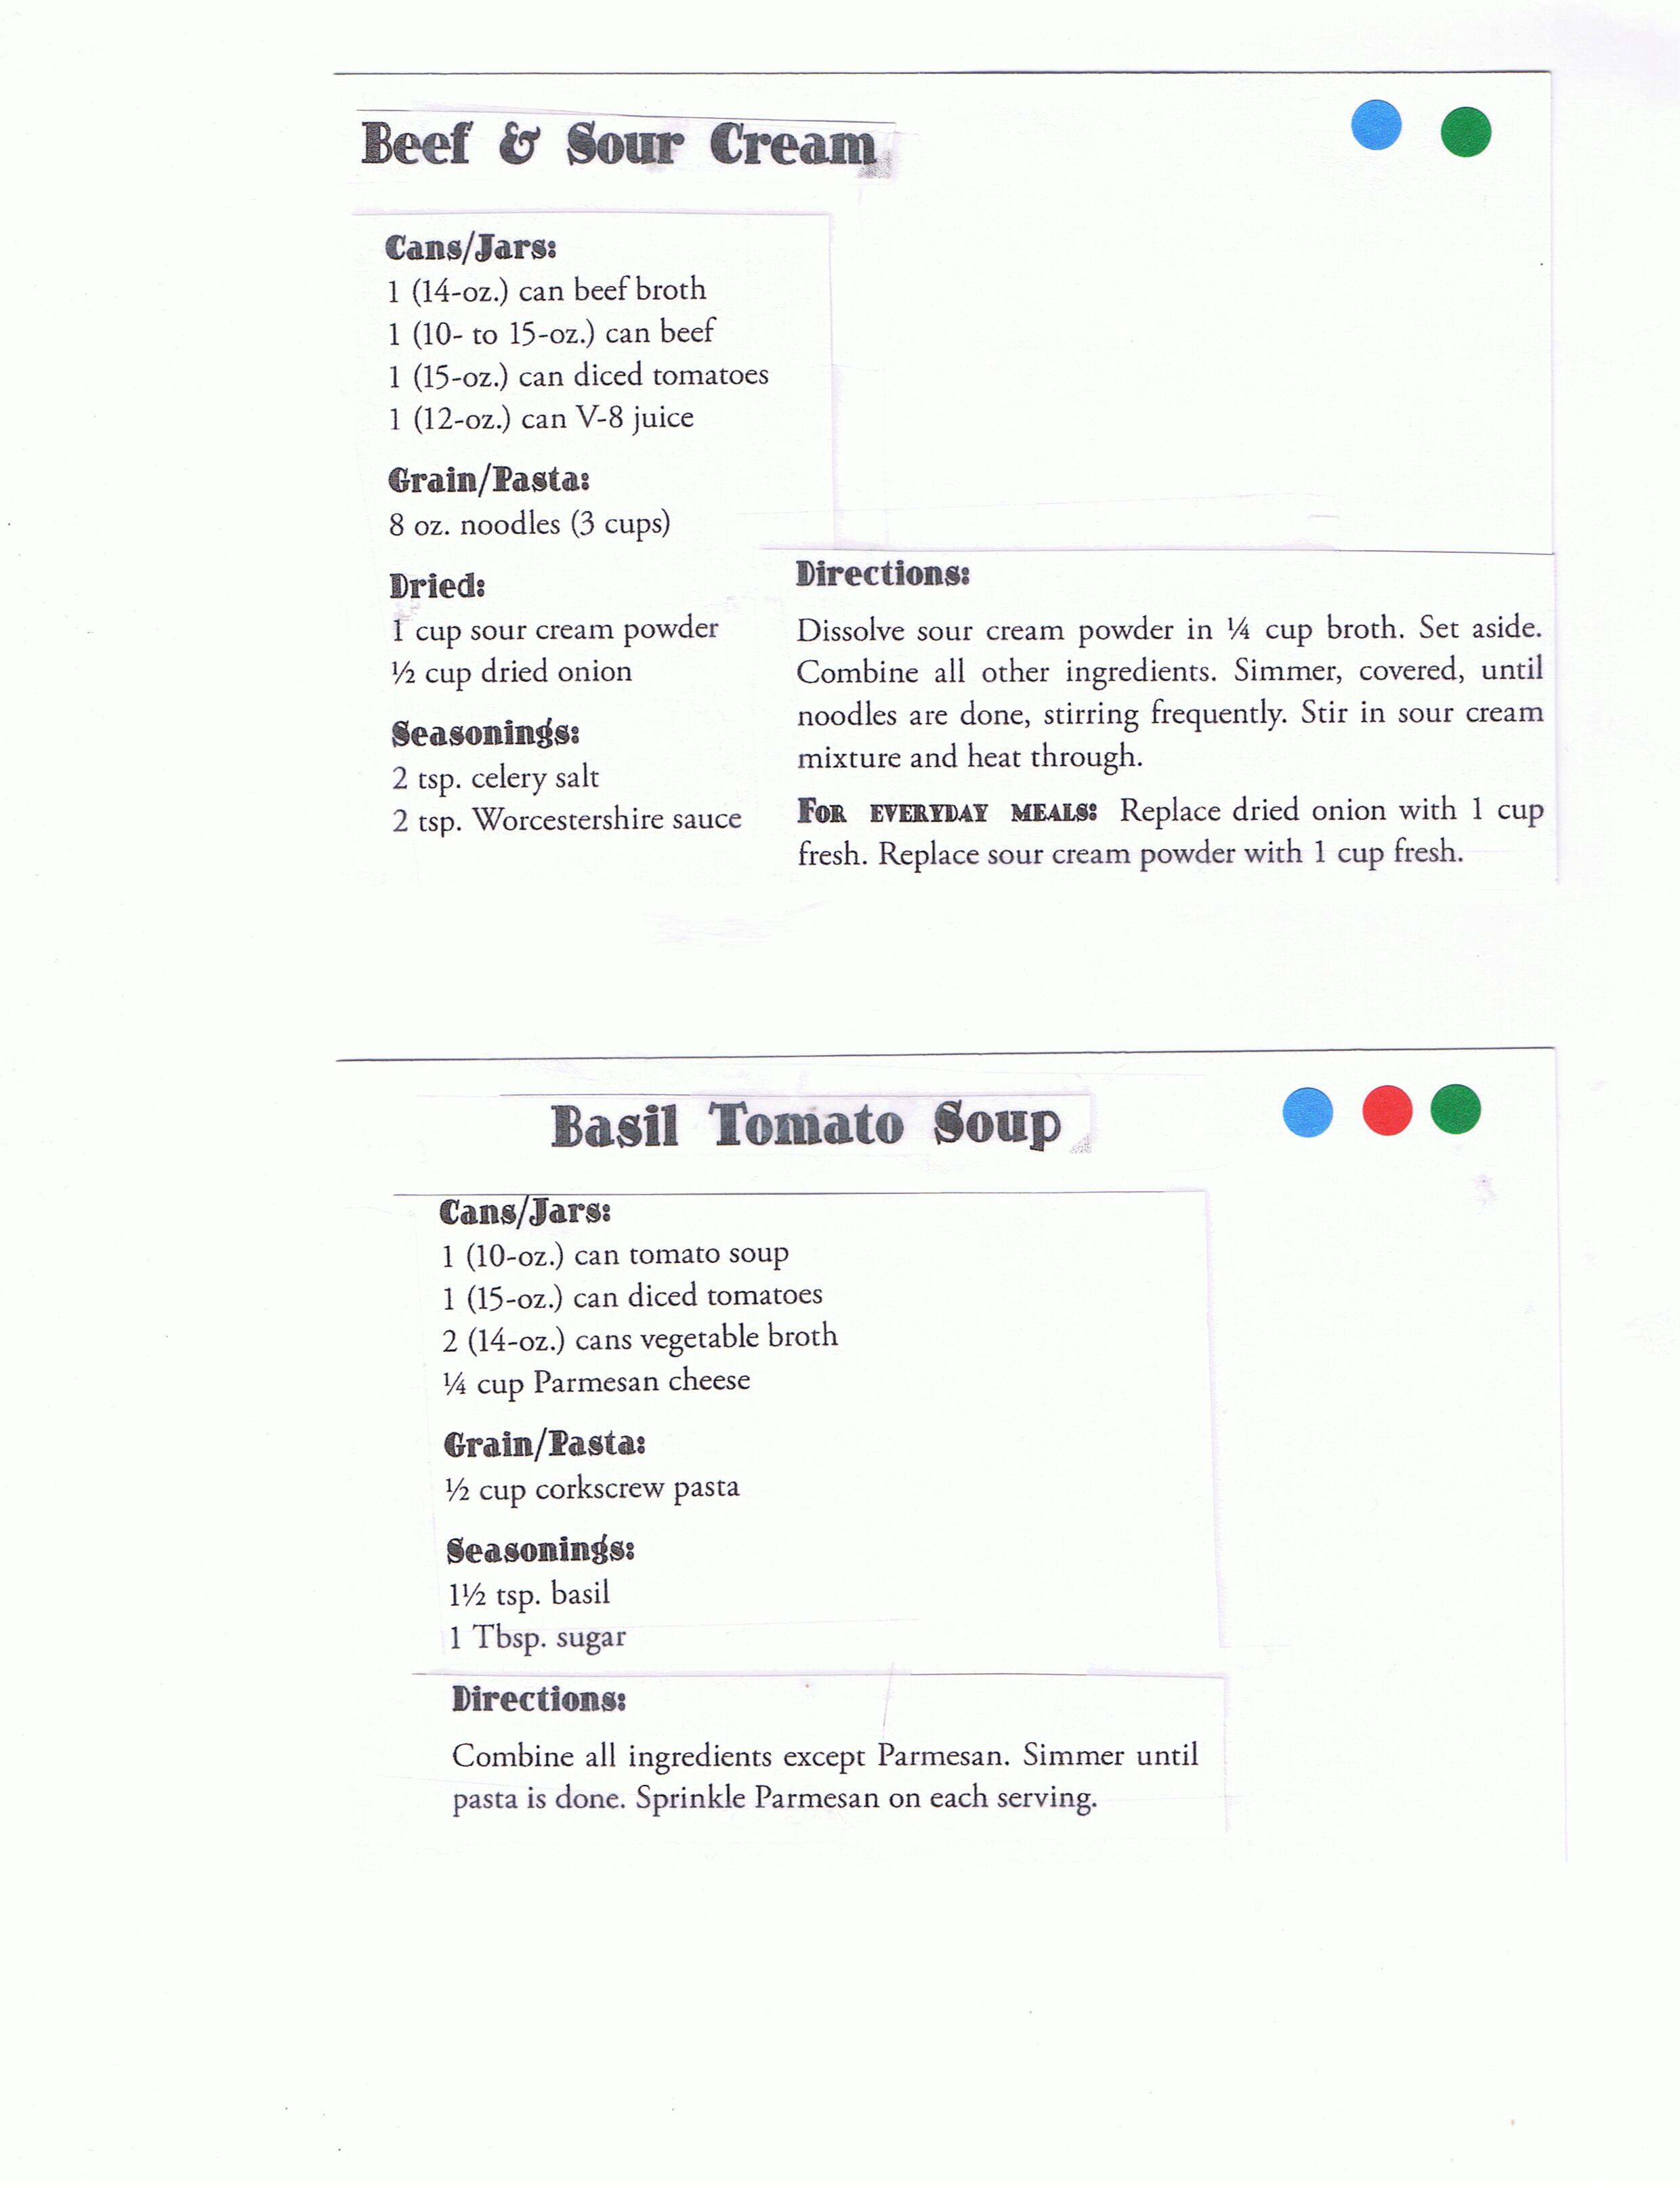 Displaying 19u0026gt; Images For - Blank Tabbed Recipe Card...